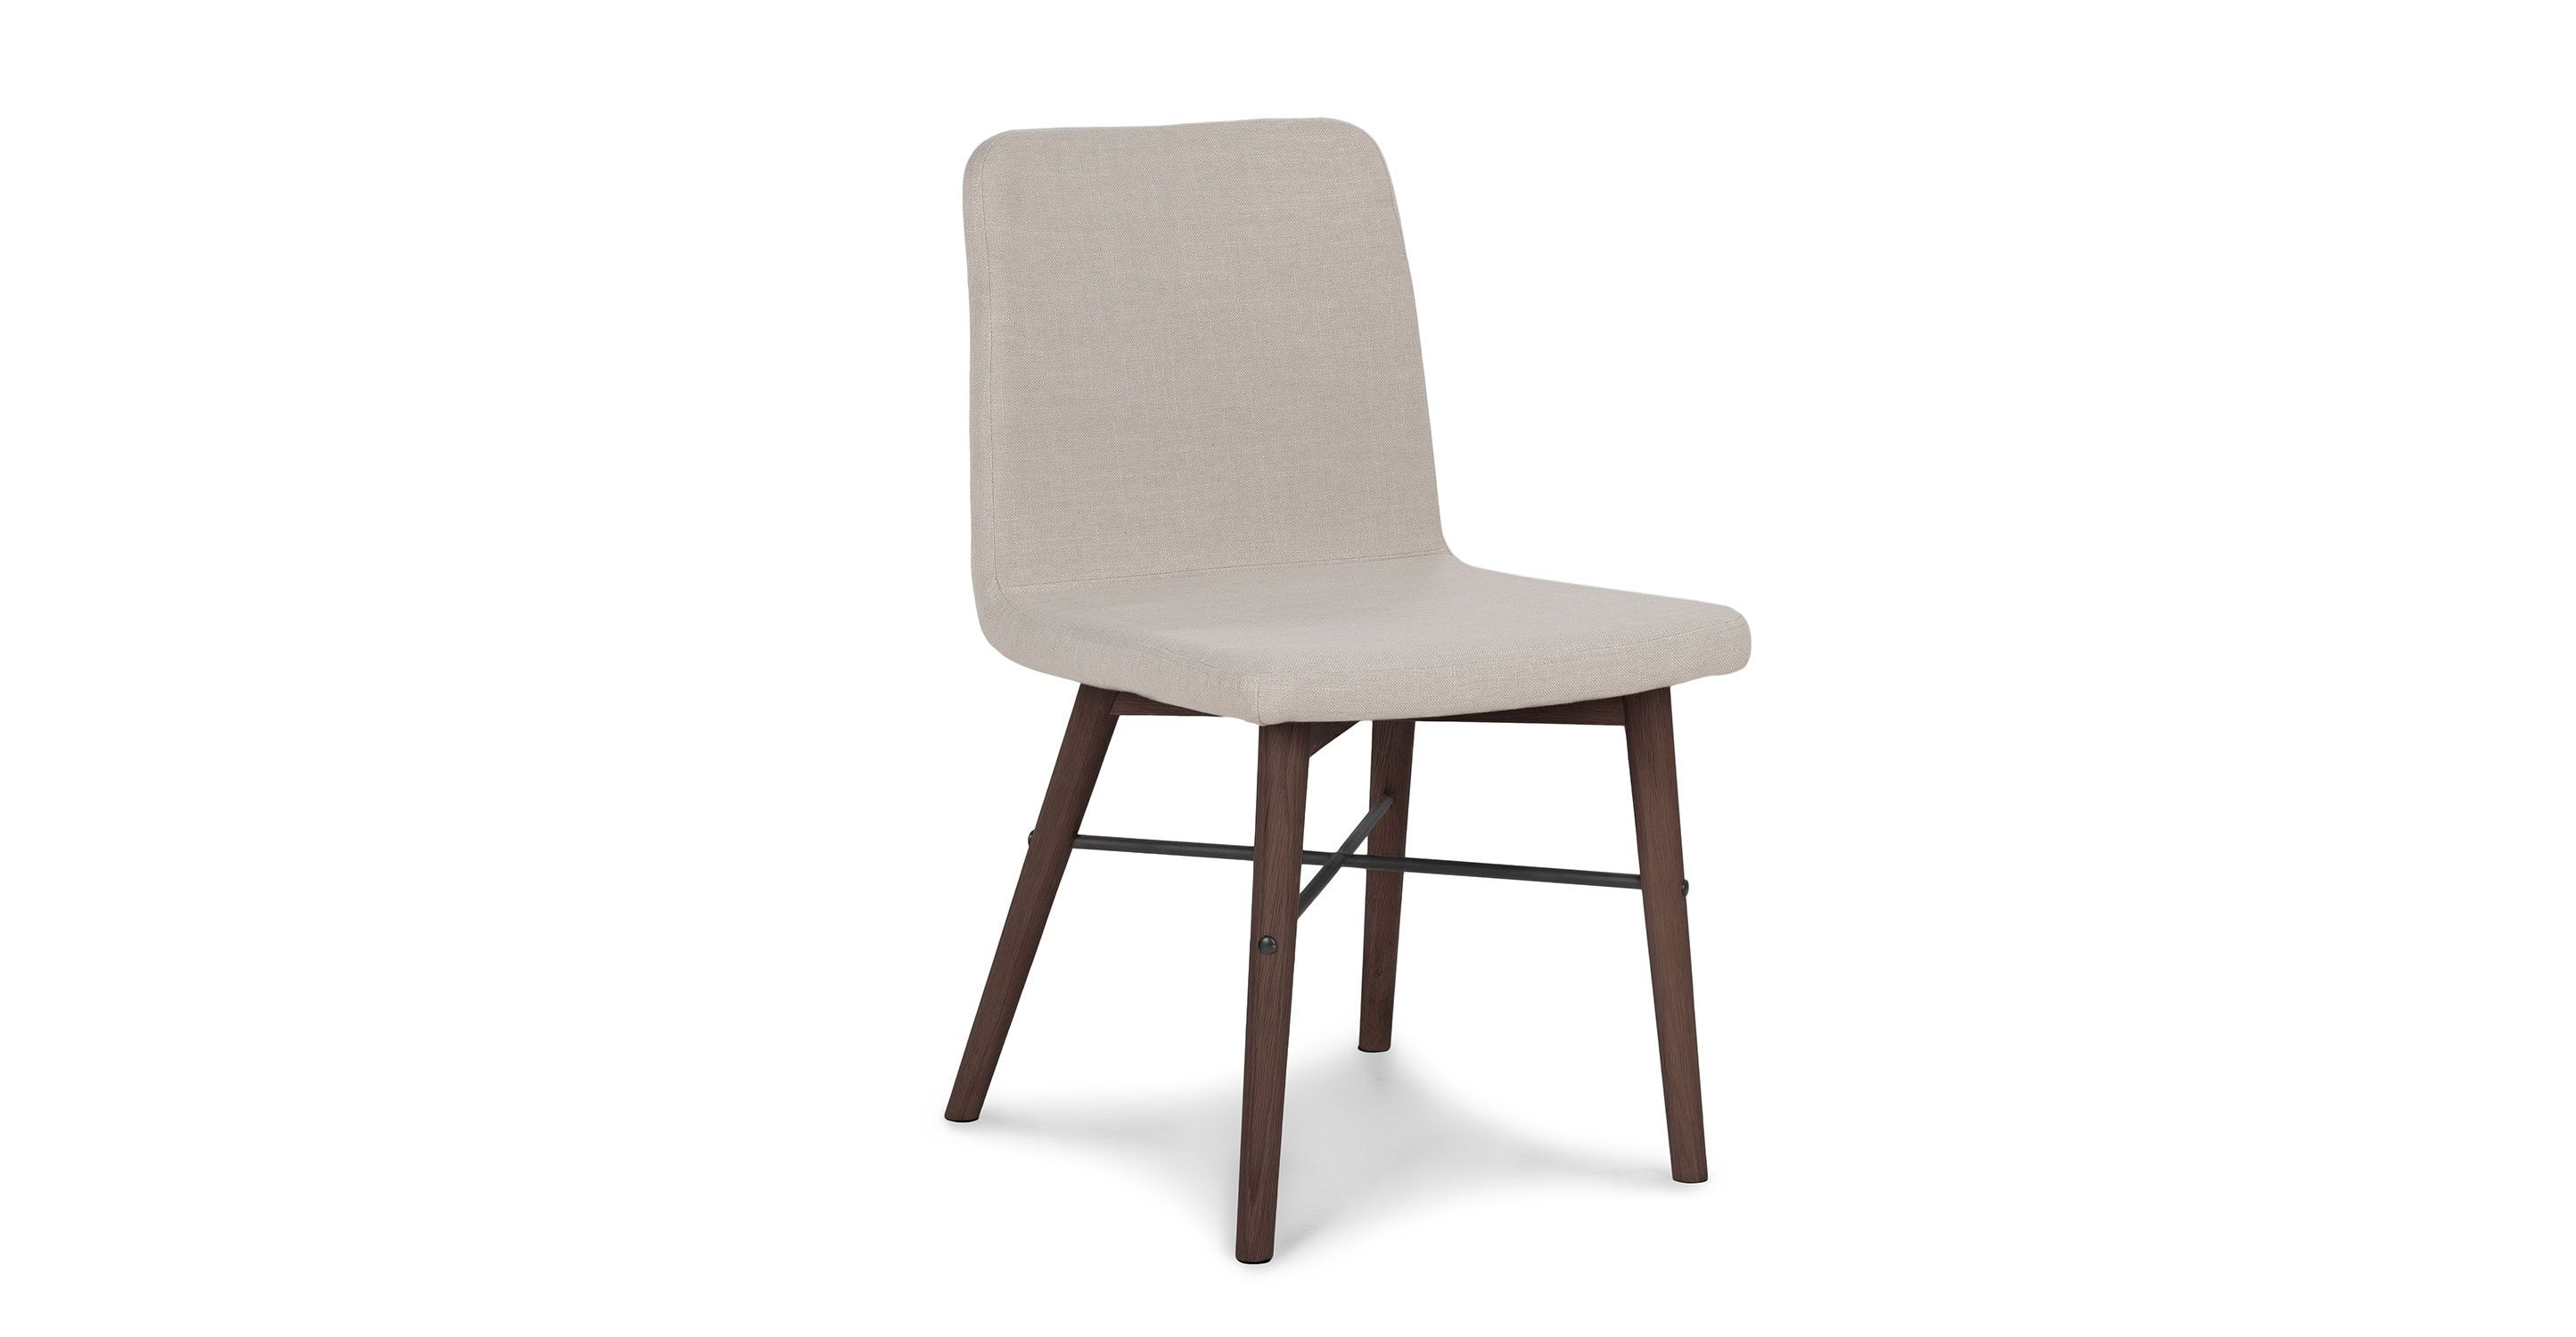 Remarkable Kissa Flax Beige Matte Walnut Dining Chair Dining Room Caraccident5 Cool Chair Designs And Ideas Caraccident5Info